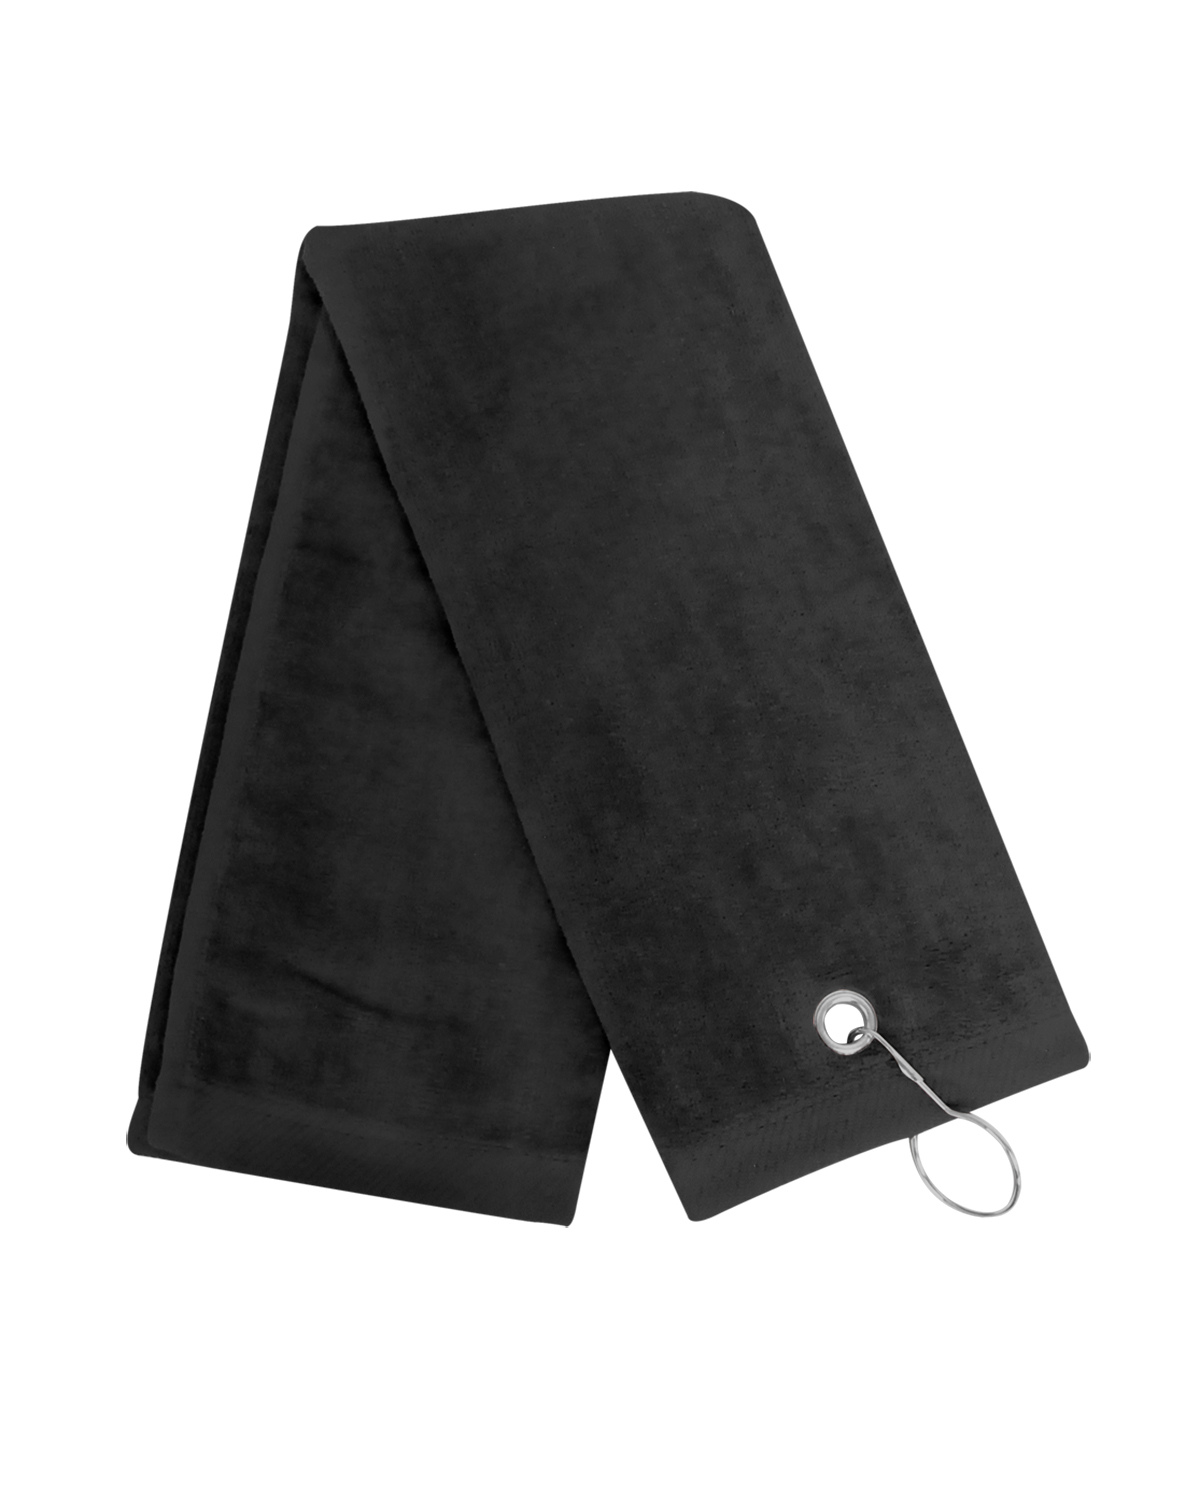 Legacy Trifold Golf Towel with Grommet